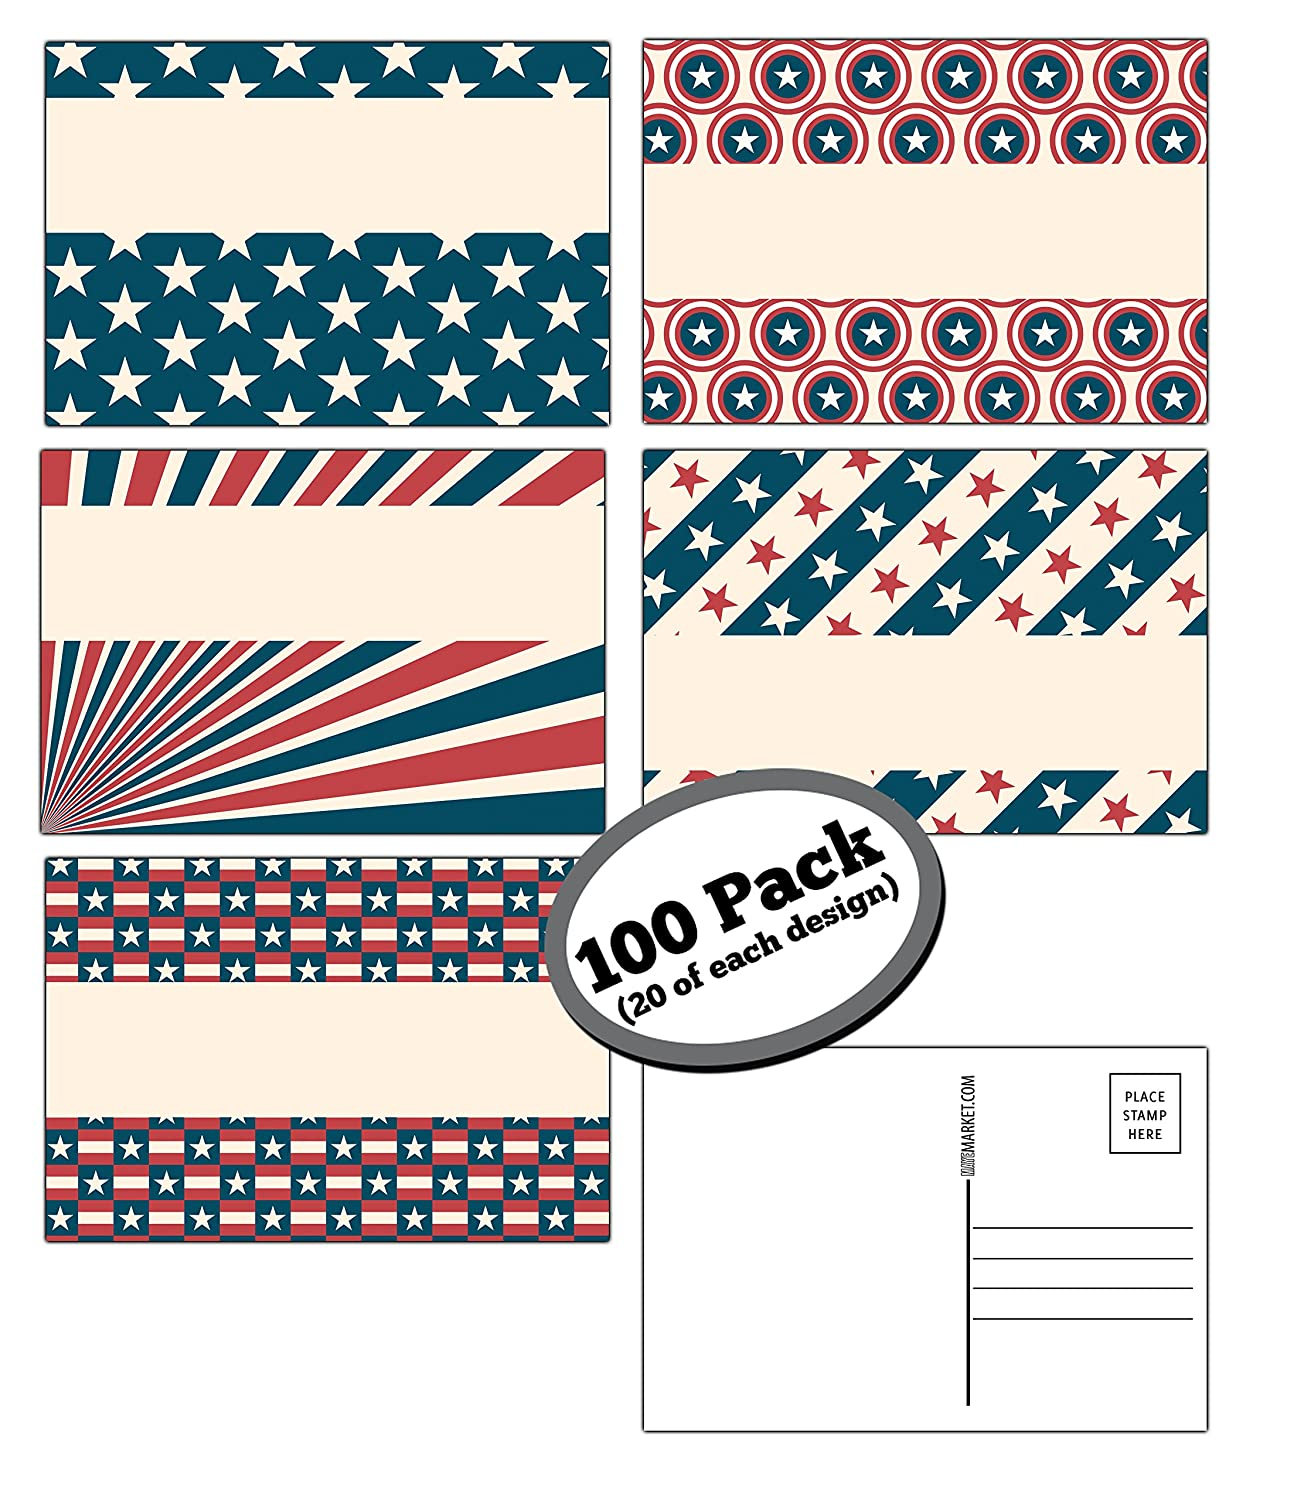 100 Pack of Blank Postcards. Each Post Card in This Patriotic, Bulk Set is 4 x 6, USPS Compliant (mailable), and USA Made. Mail to Voters to get Votes. Flip Side is Plain White and unused. (Variety) 91z1ZJv7AGL